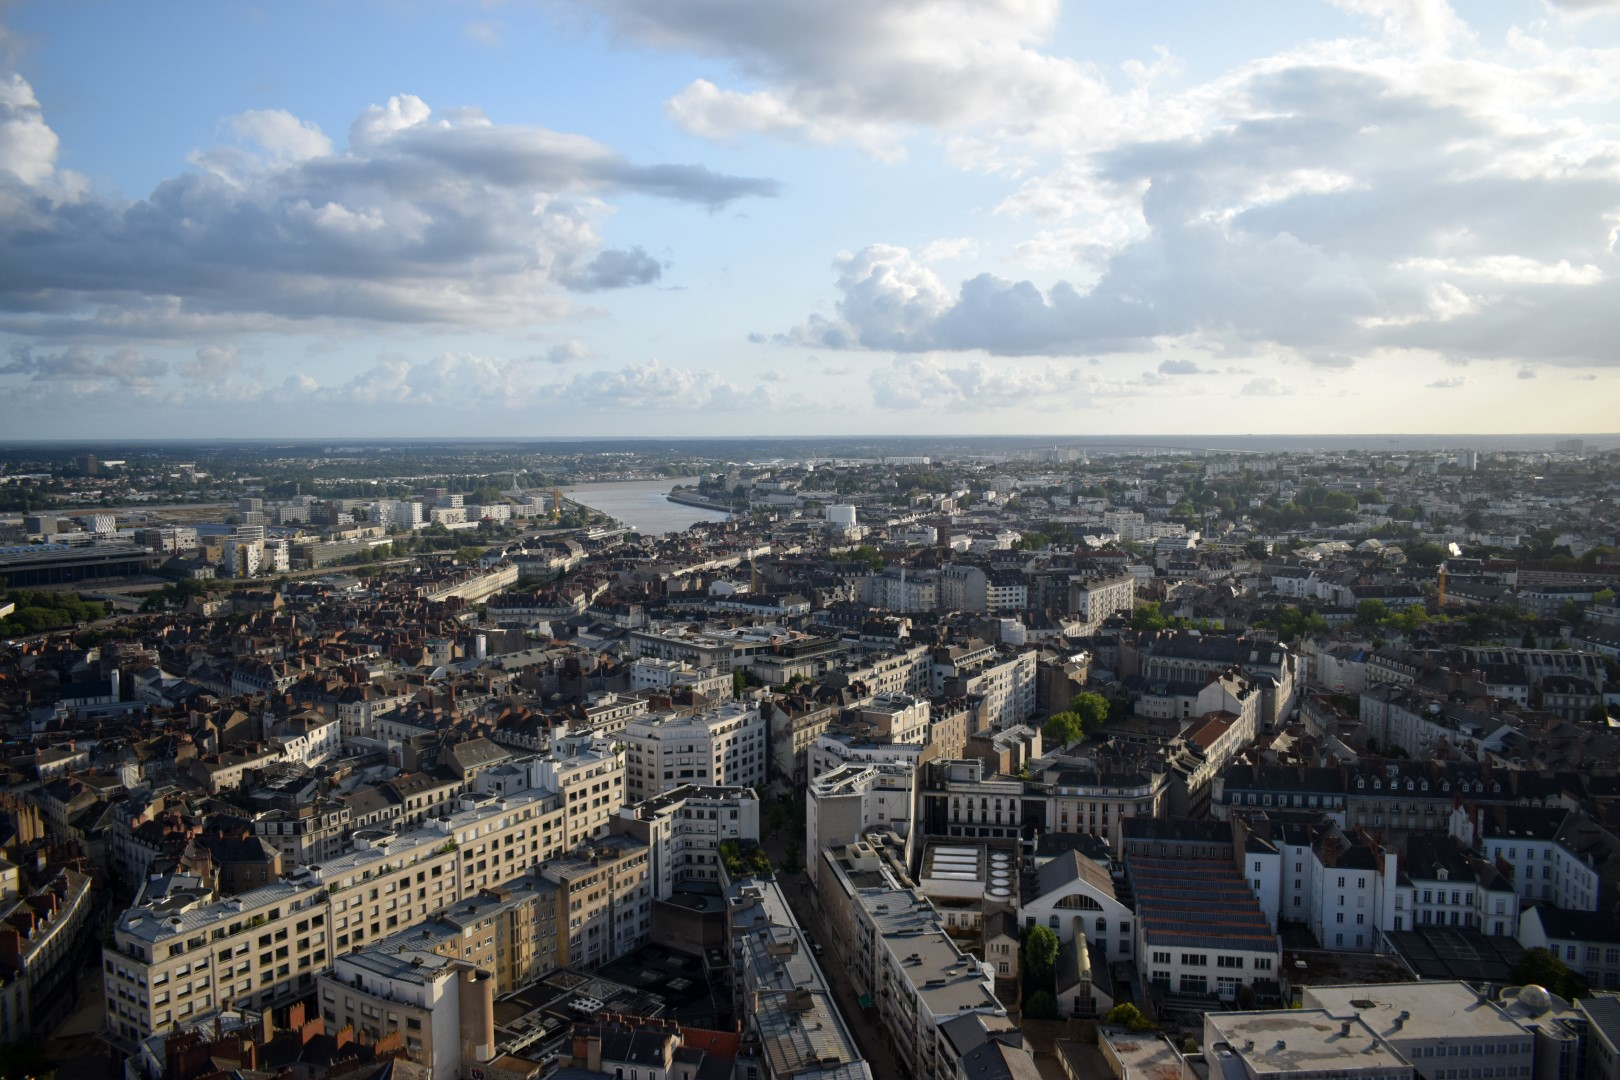 """Le Nid"", 32nd floor of the Tour de Bretagne"", 360° views of the Greater Nantes area"